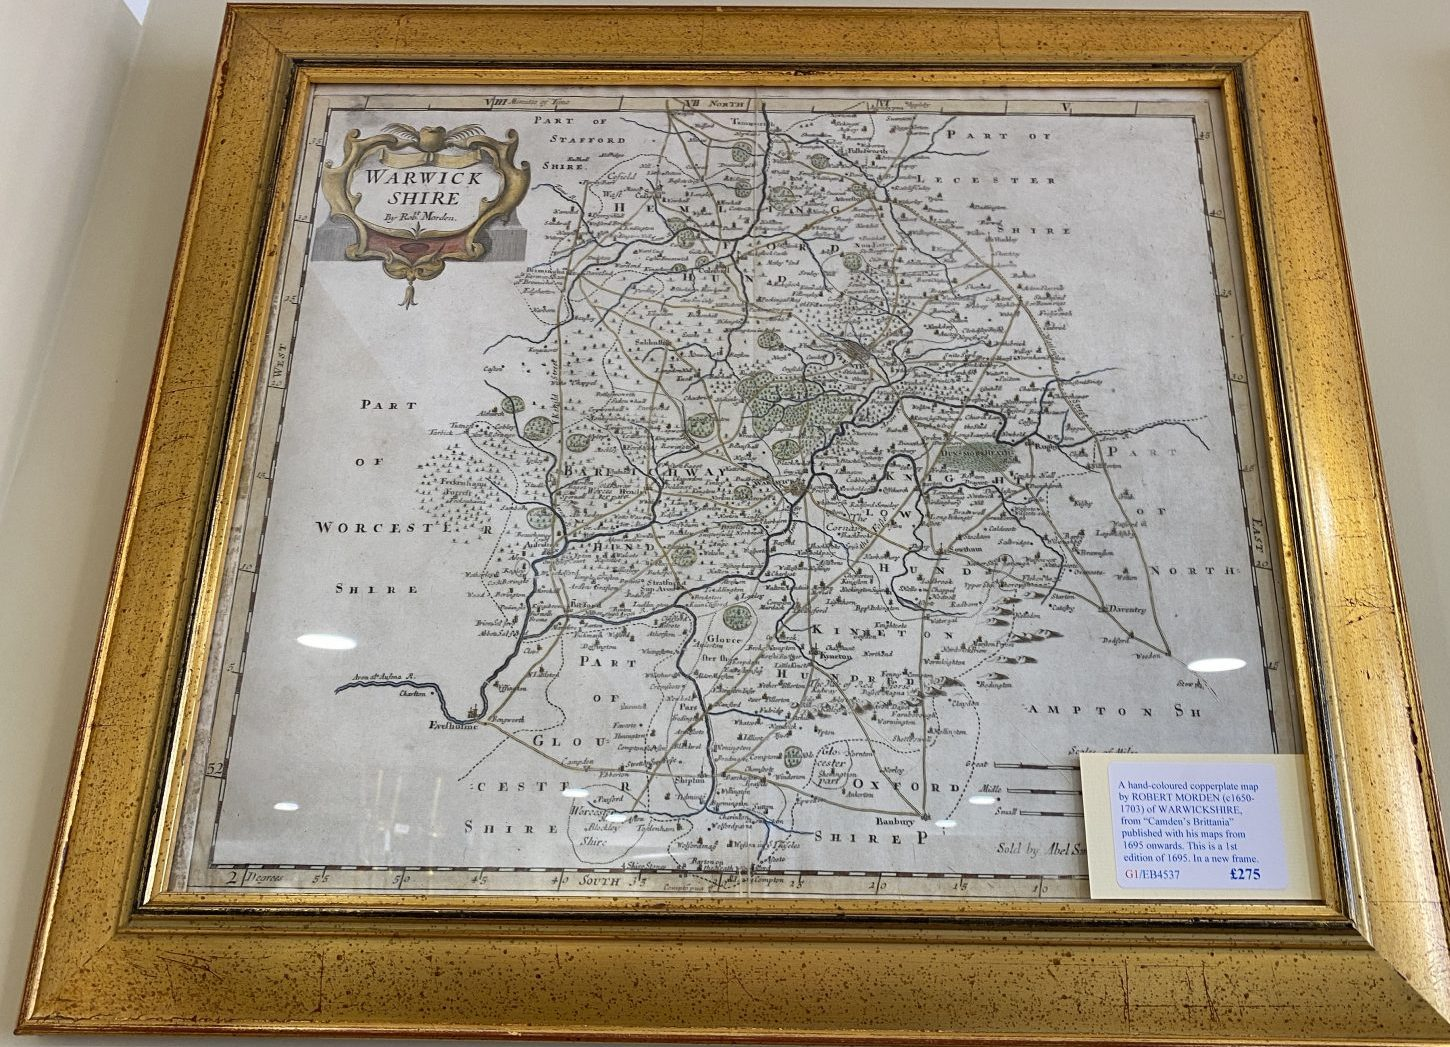 G1 - A hand-coloured copperplate map of WARWICKSHIRE by Robert Morden (1650-1703) from Camdens Britannia of 1695, in a new frame.  £275